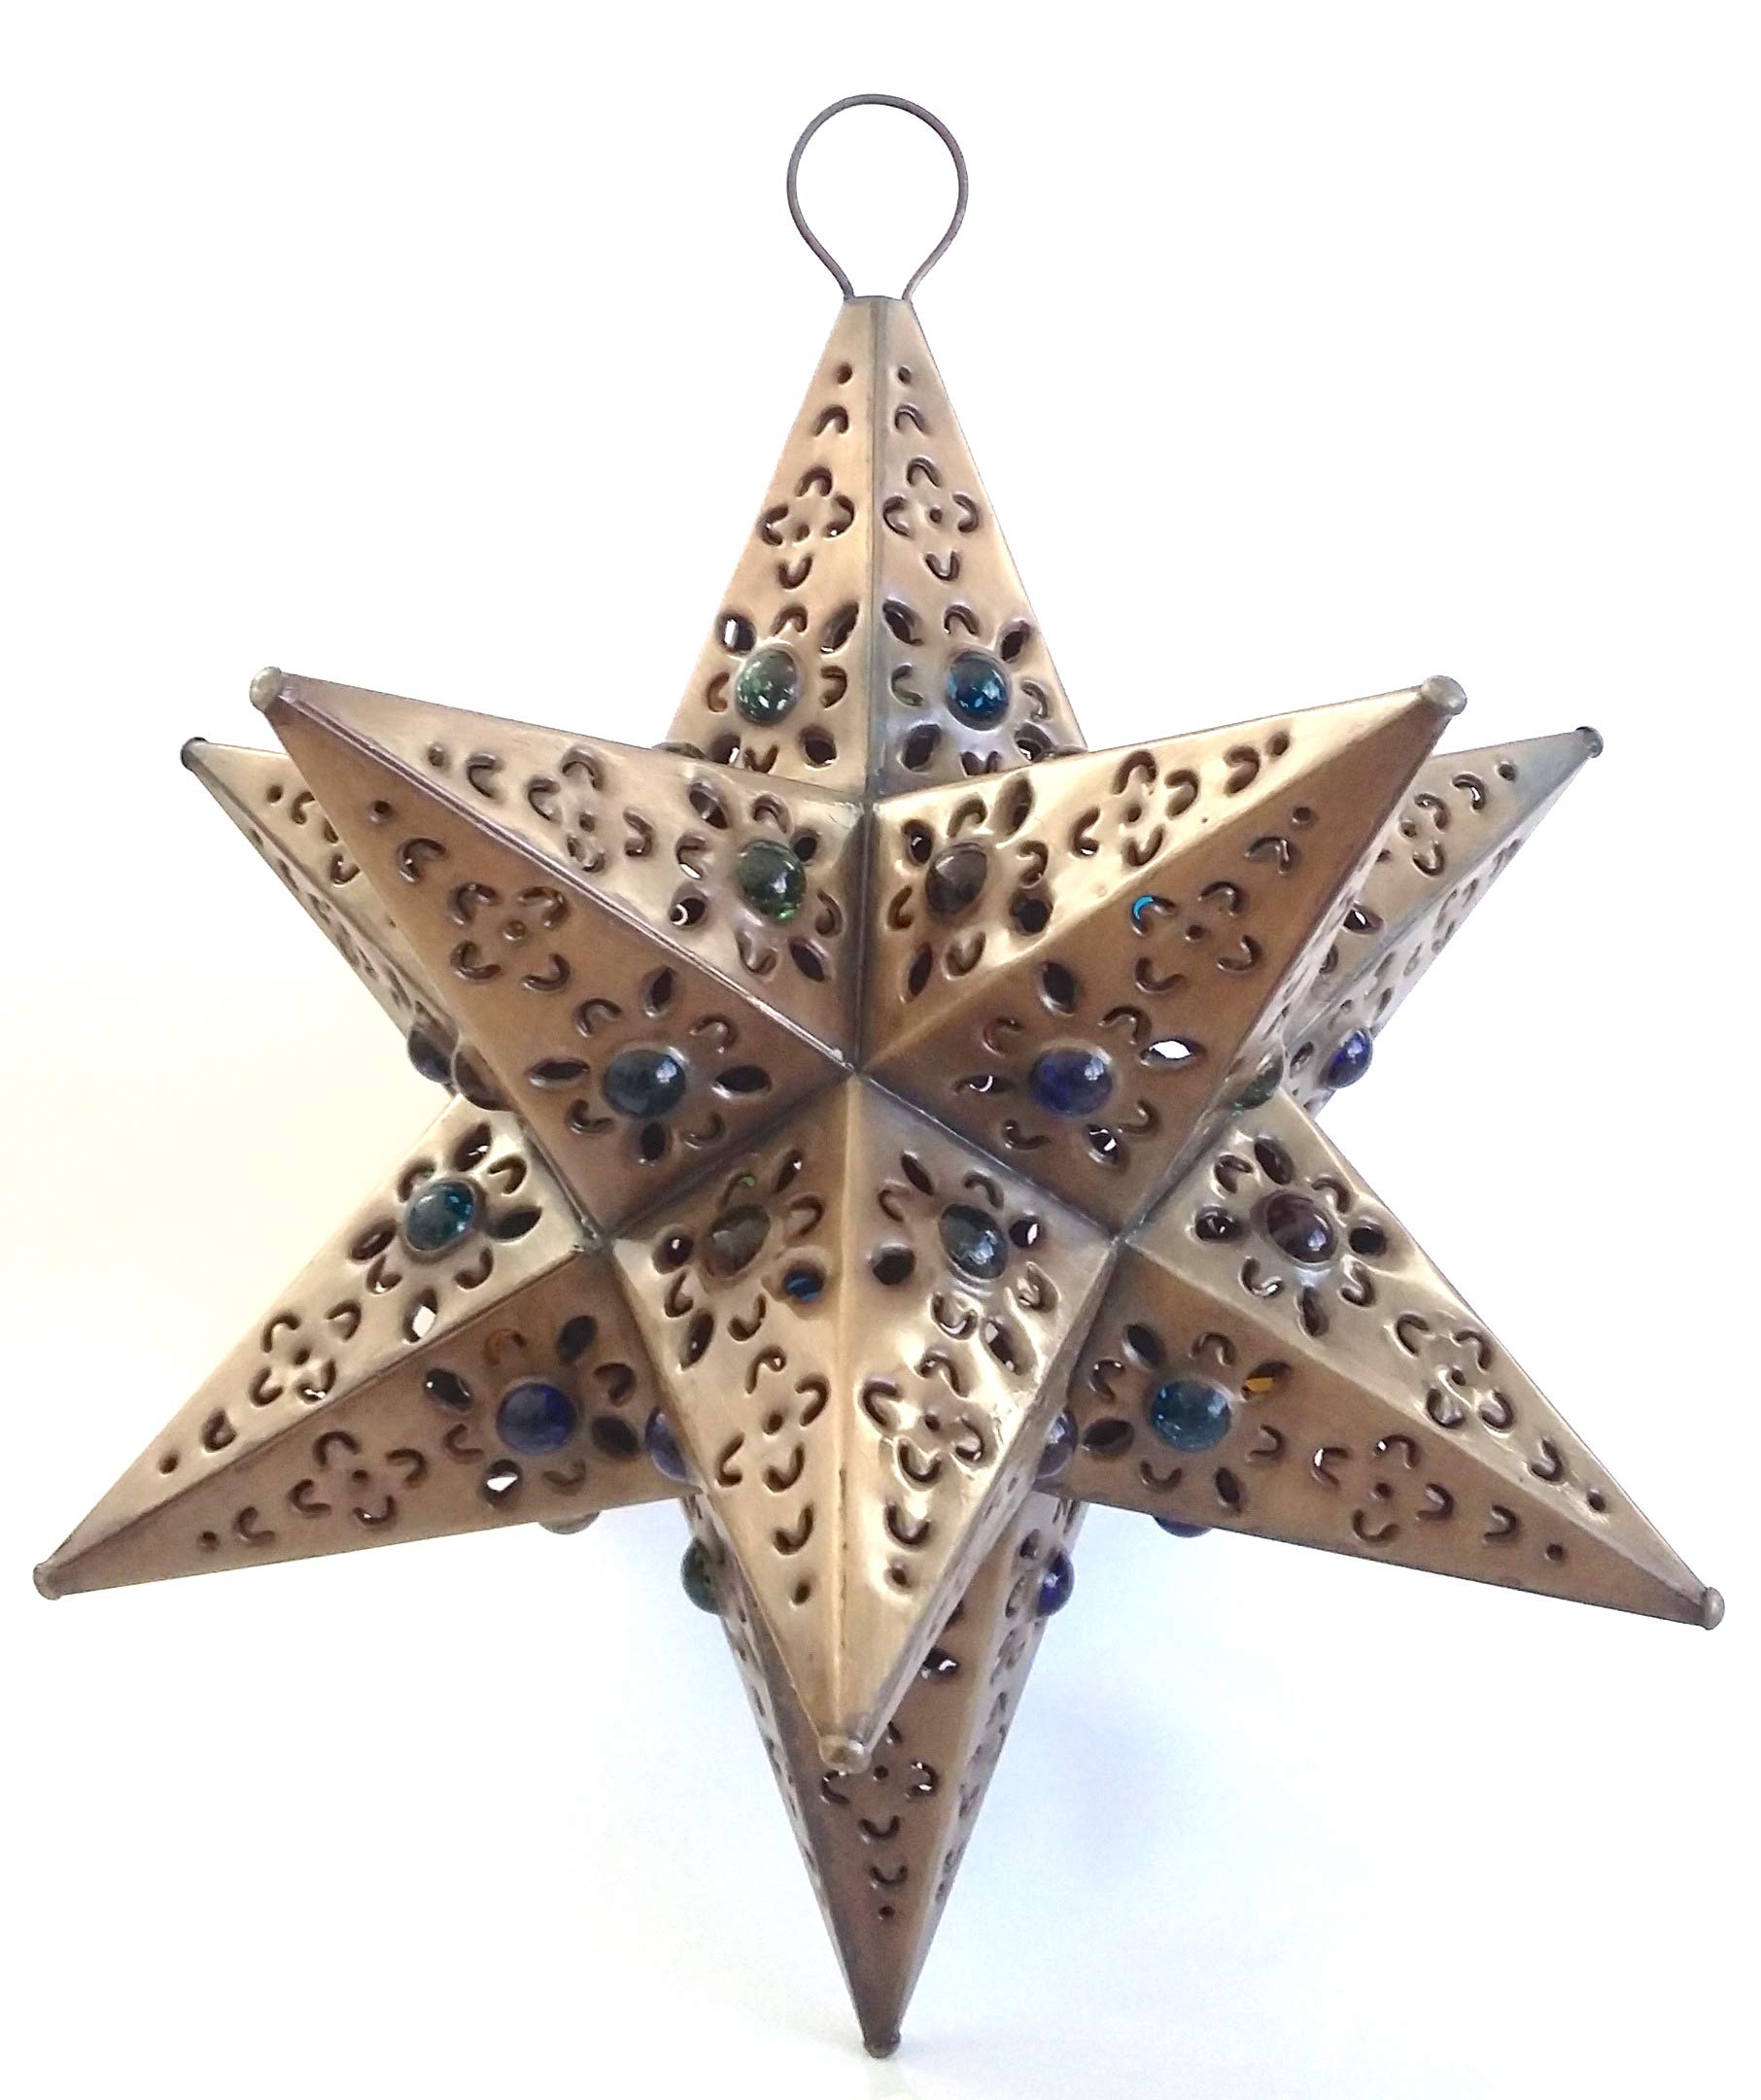 Unique and Beautiful Handmade Hanging Star Lamp with 12 Points! for Home and Garden Decor by SHOPIMUNDO. Outdoor Hanging Decorative Star Lantern with Marbles, You Will Love it! Fast Shipping!